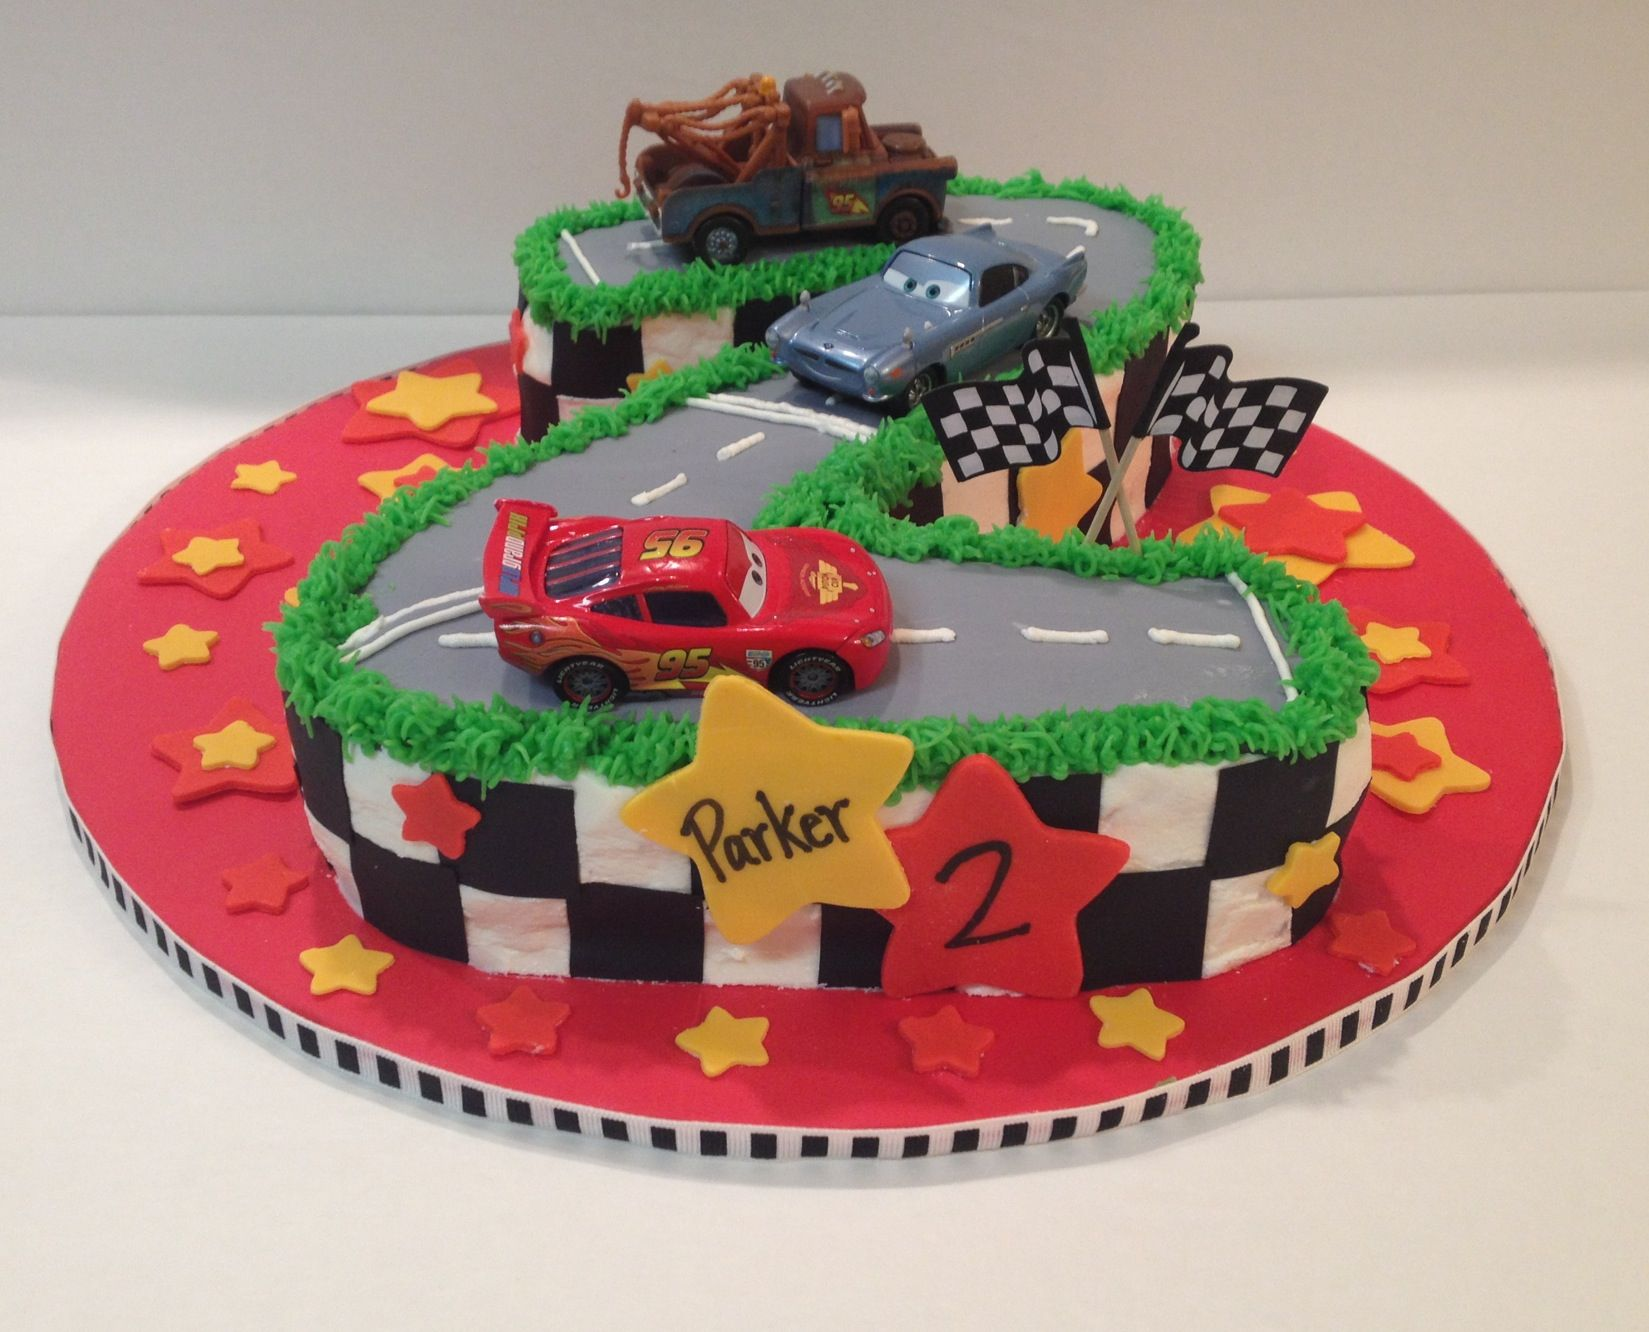 Disneys Cars Cake For  Year Old Birthday By Jillees Goodees - Birthday cake cars 2